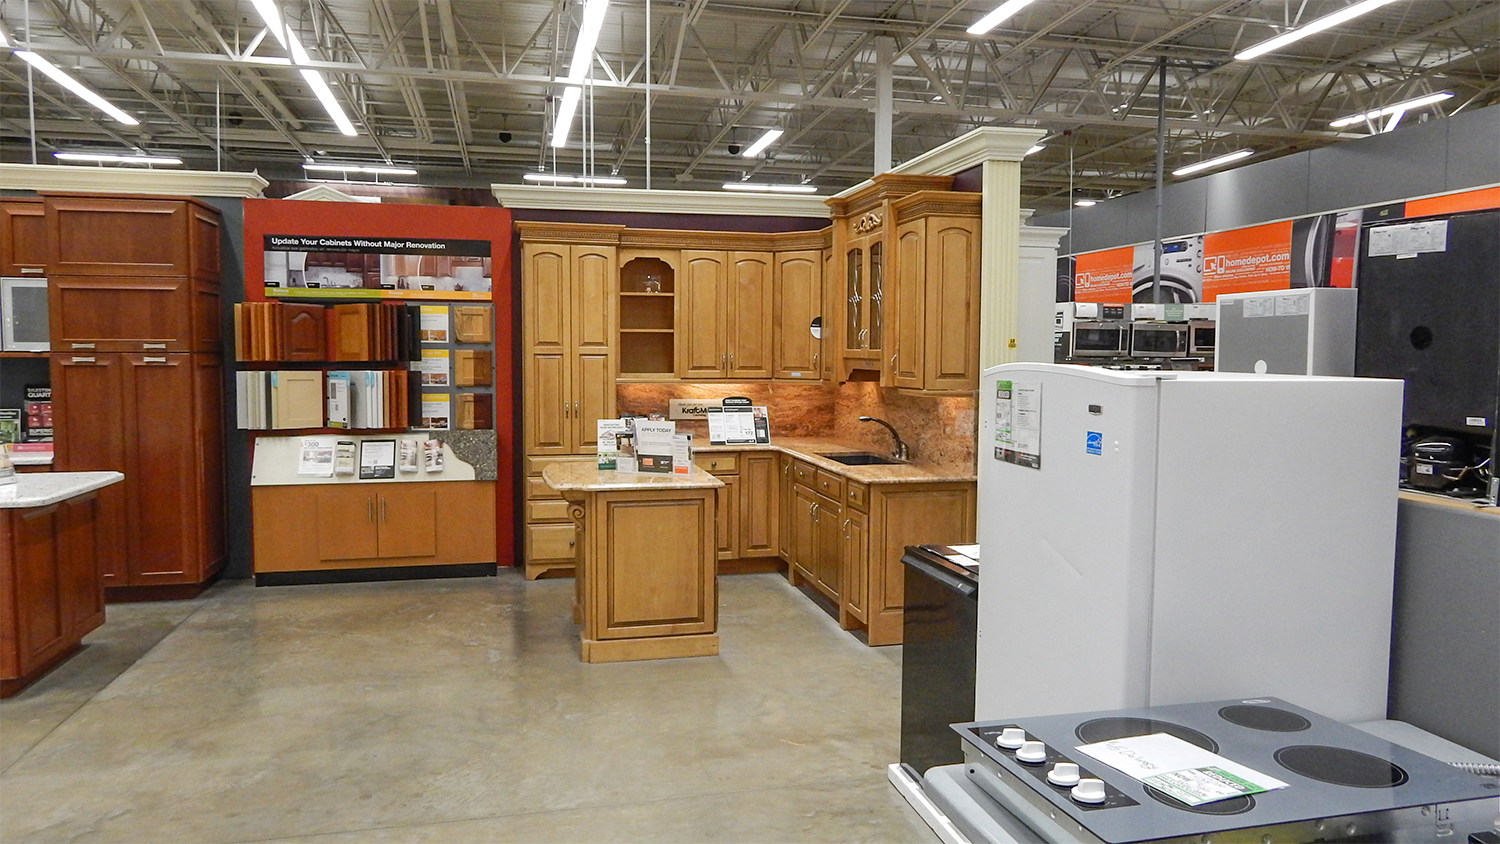 Home depot guarantees to beat competitors price by 10 sun city center sun city center photos Kitchen design services home depot